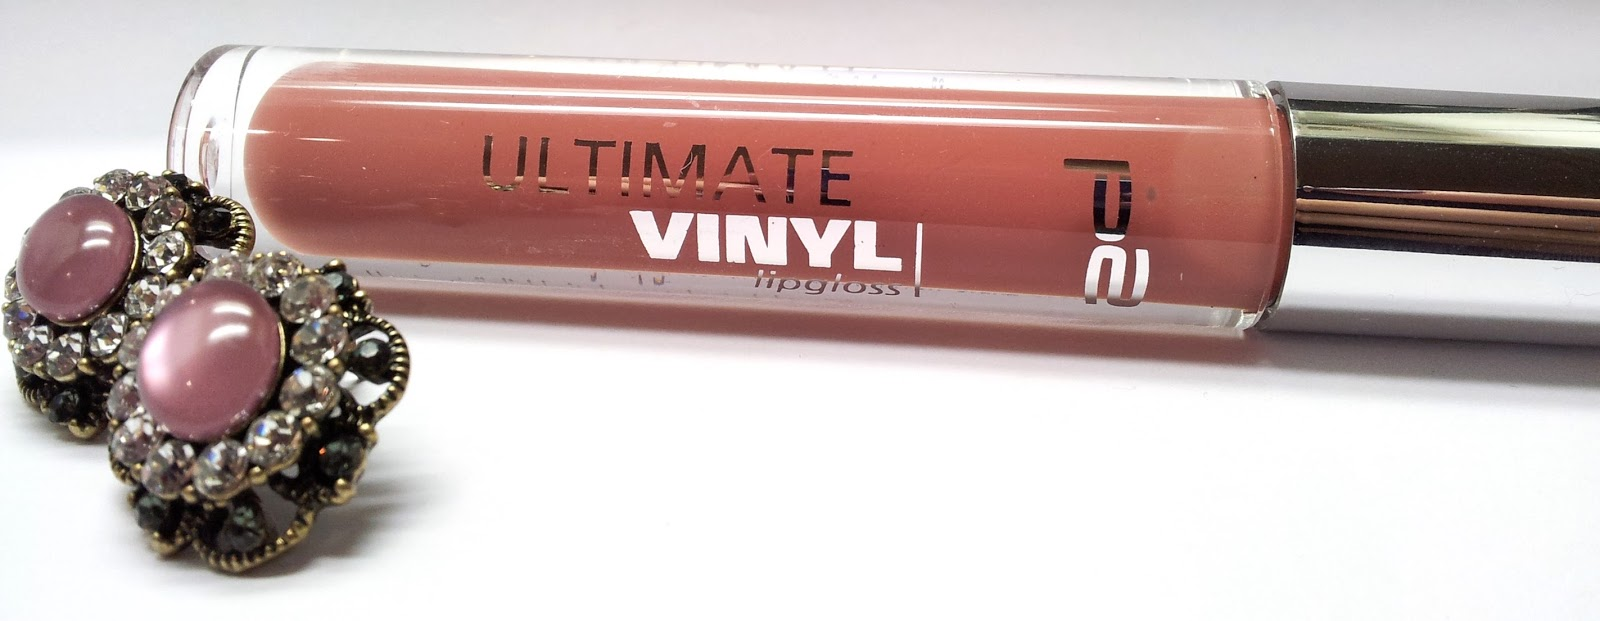 p2 Ultimate vinyl lipgloss 030 spicey latte